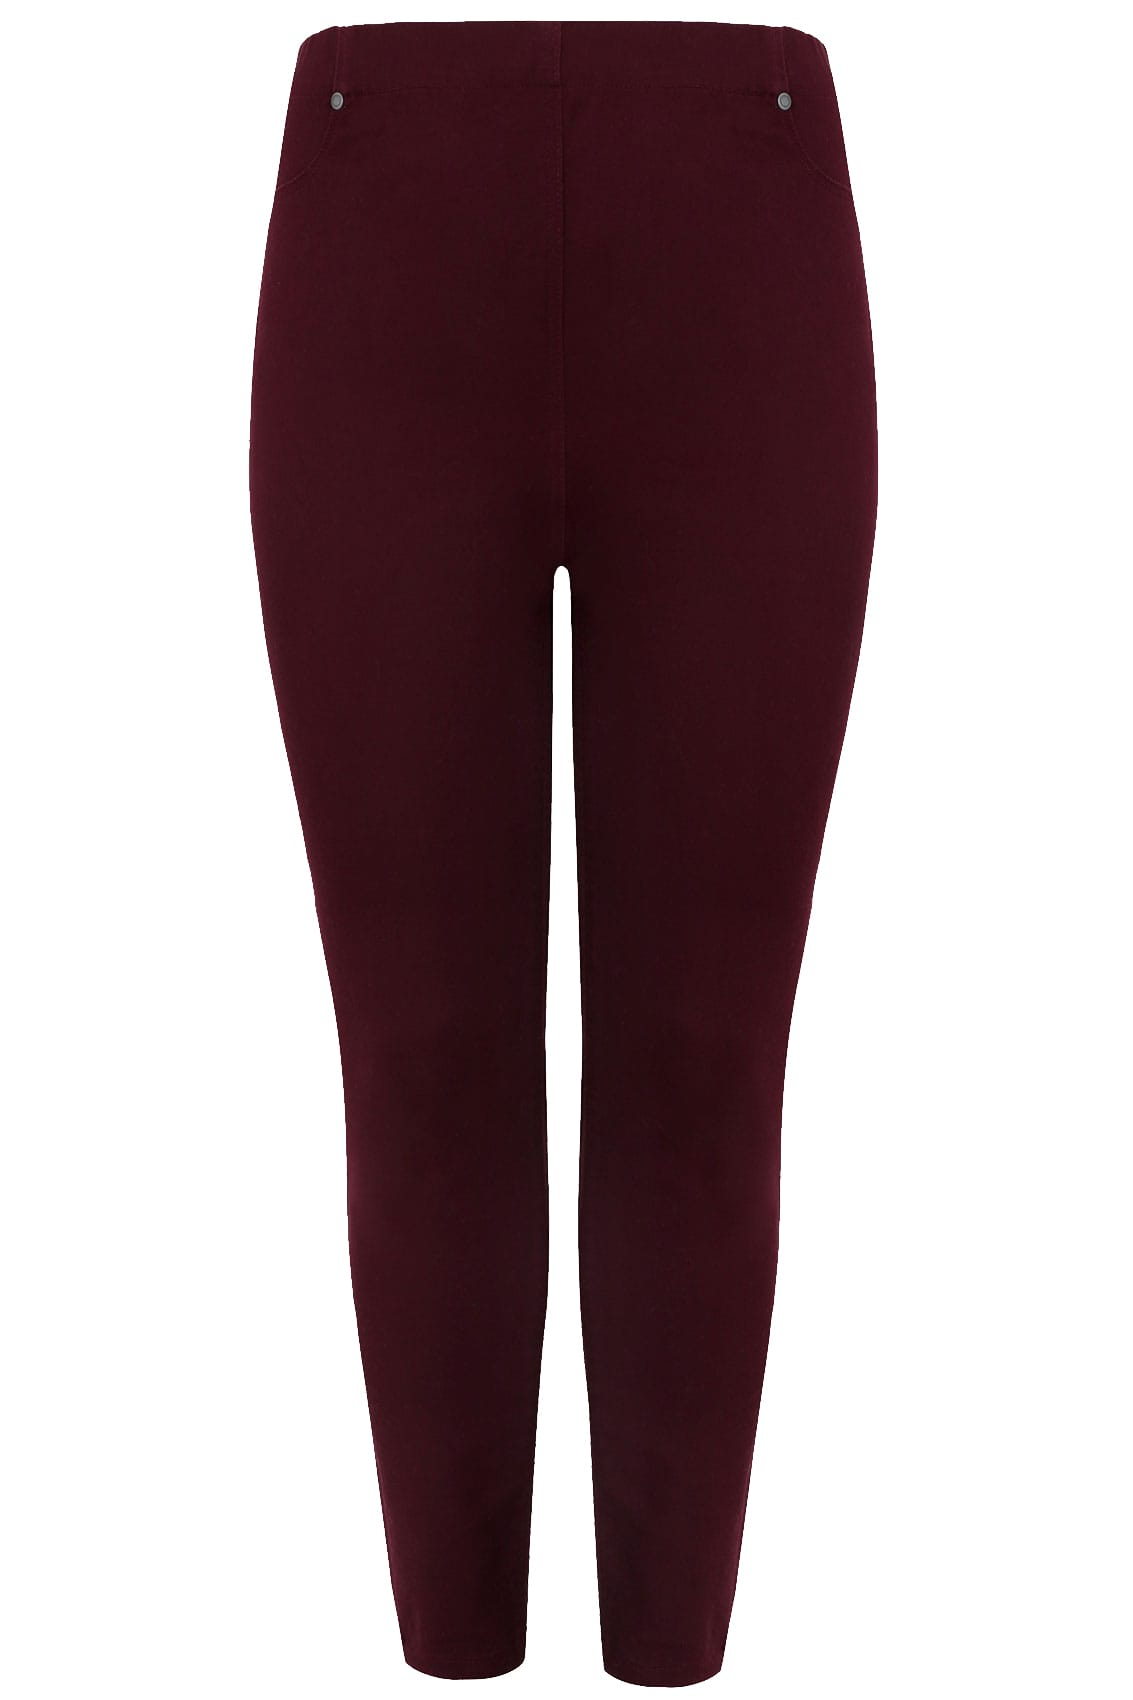 Essential pair of jeggings great for outdoor or casual wear. CLOYA Women's Denim Print Fake Jeans Seamless Full Length Fleece Lined Leggings. by CLOYA. $ - $ $ 11 $ 19 99 Prime. FREE Shipping on eligible orders. Some sizes/colors are Prime eligible. out of 5 stars Previous Page 1 2 3 20 Next Page.